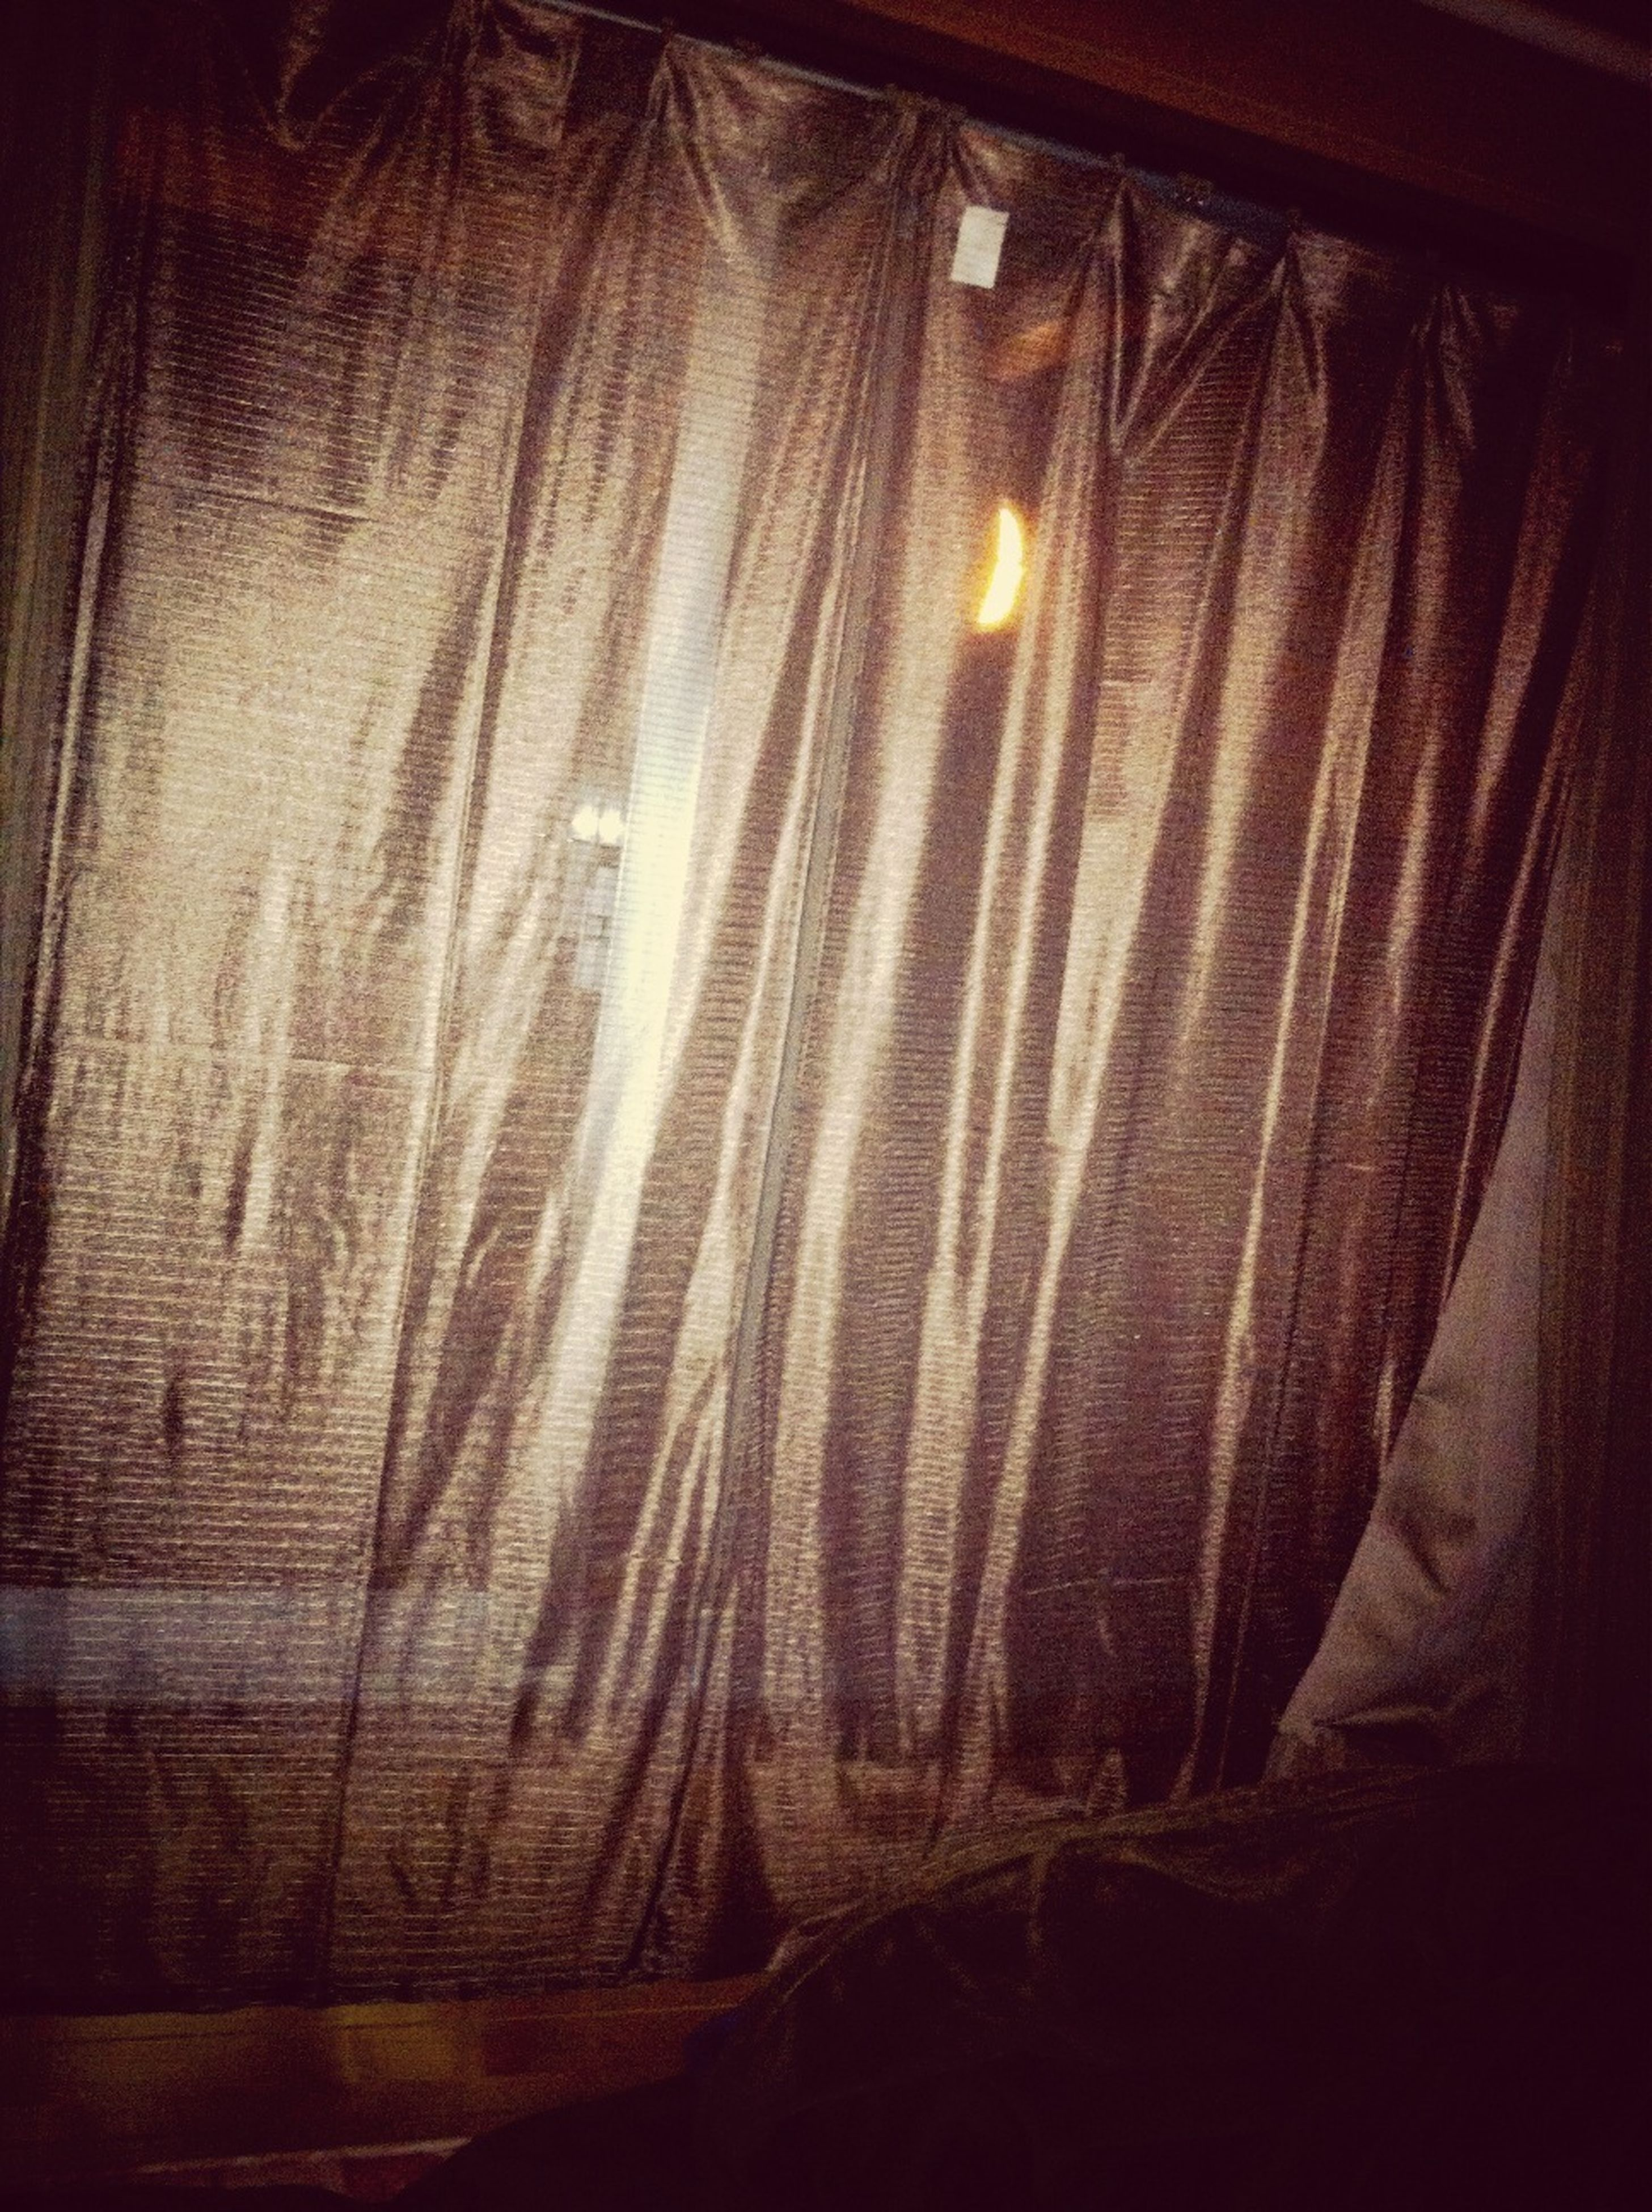 indoors, window, full frame, close-up, backgrounds, transparent, curtain, pattern, no people, dark, glass - material, night, illuminated, textured, light - natural phenomenon, abstract, home interior, auto post production filter, detail, textile